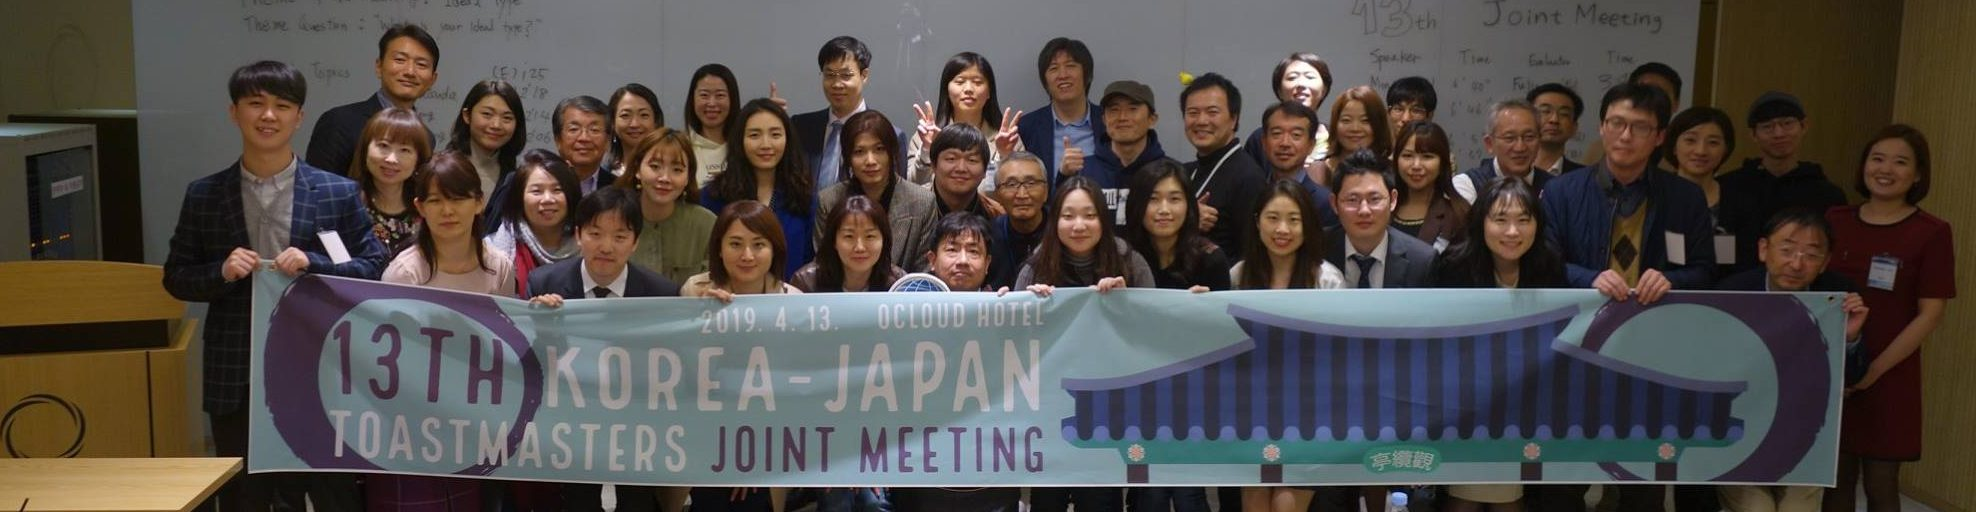 Korea Japan Joint Meeting